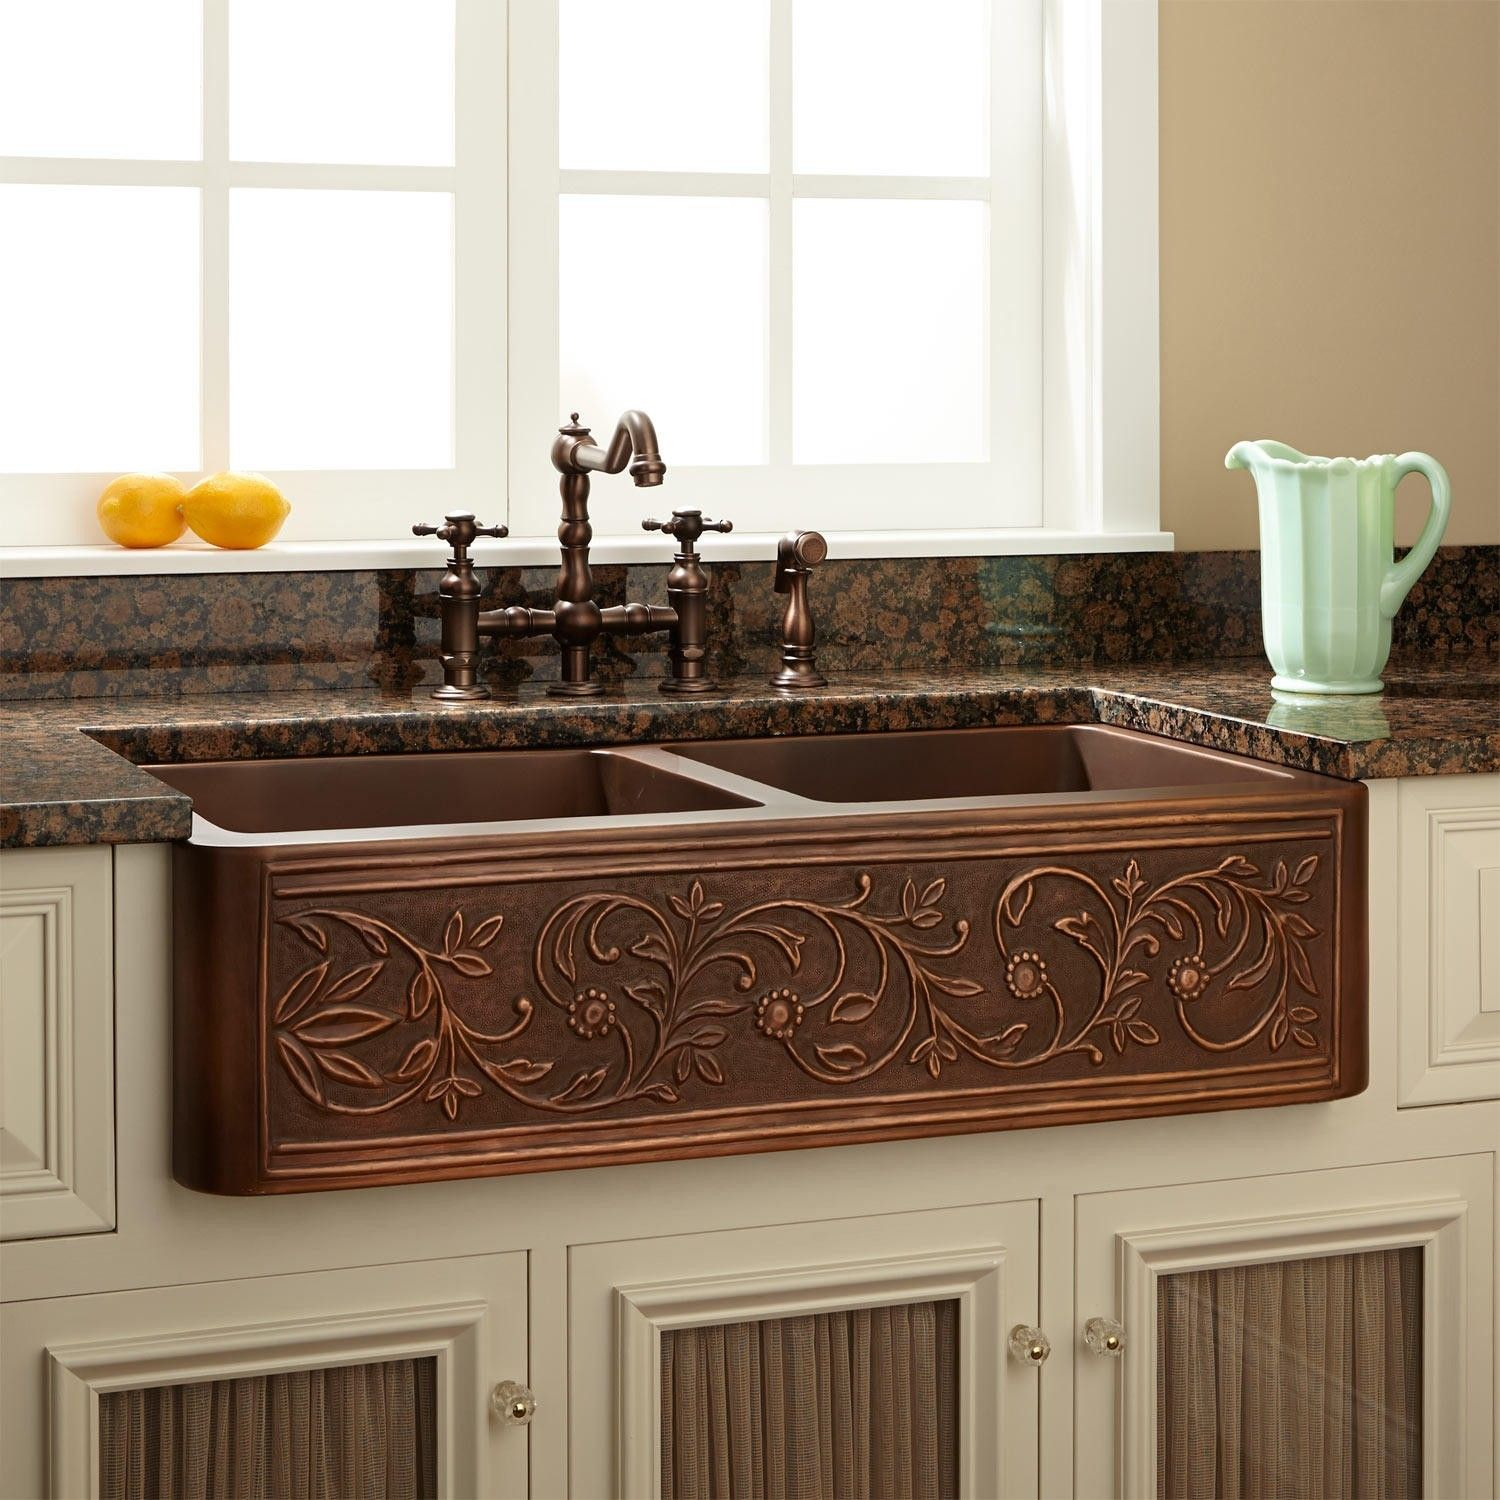 36 Vine Design Double Bowl Copper Farmhouse Sink Farmhouse Sink Kitchen Copper Farmhouse Sinks Rustic Home Design